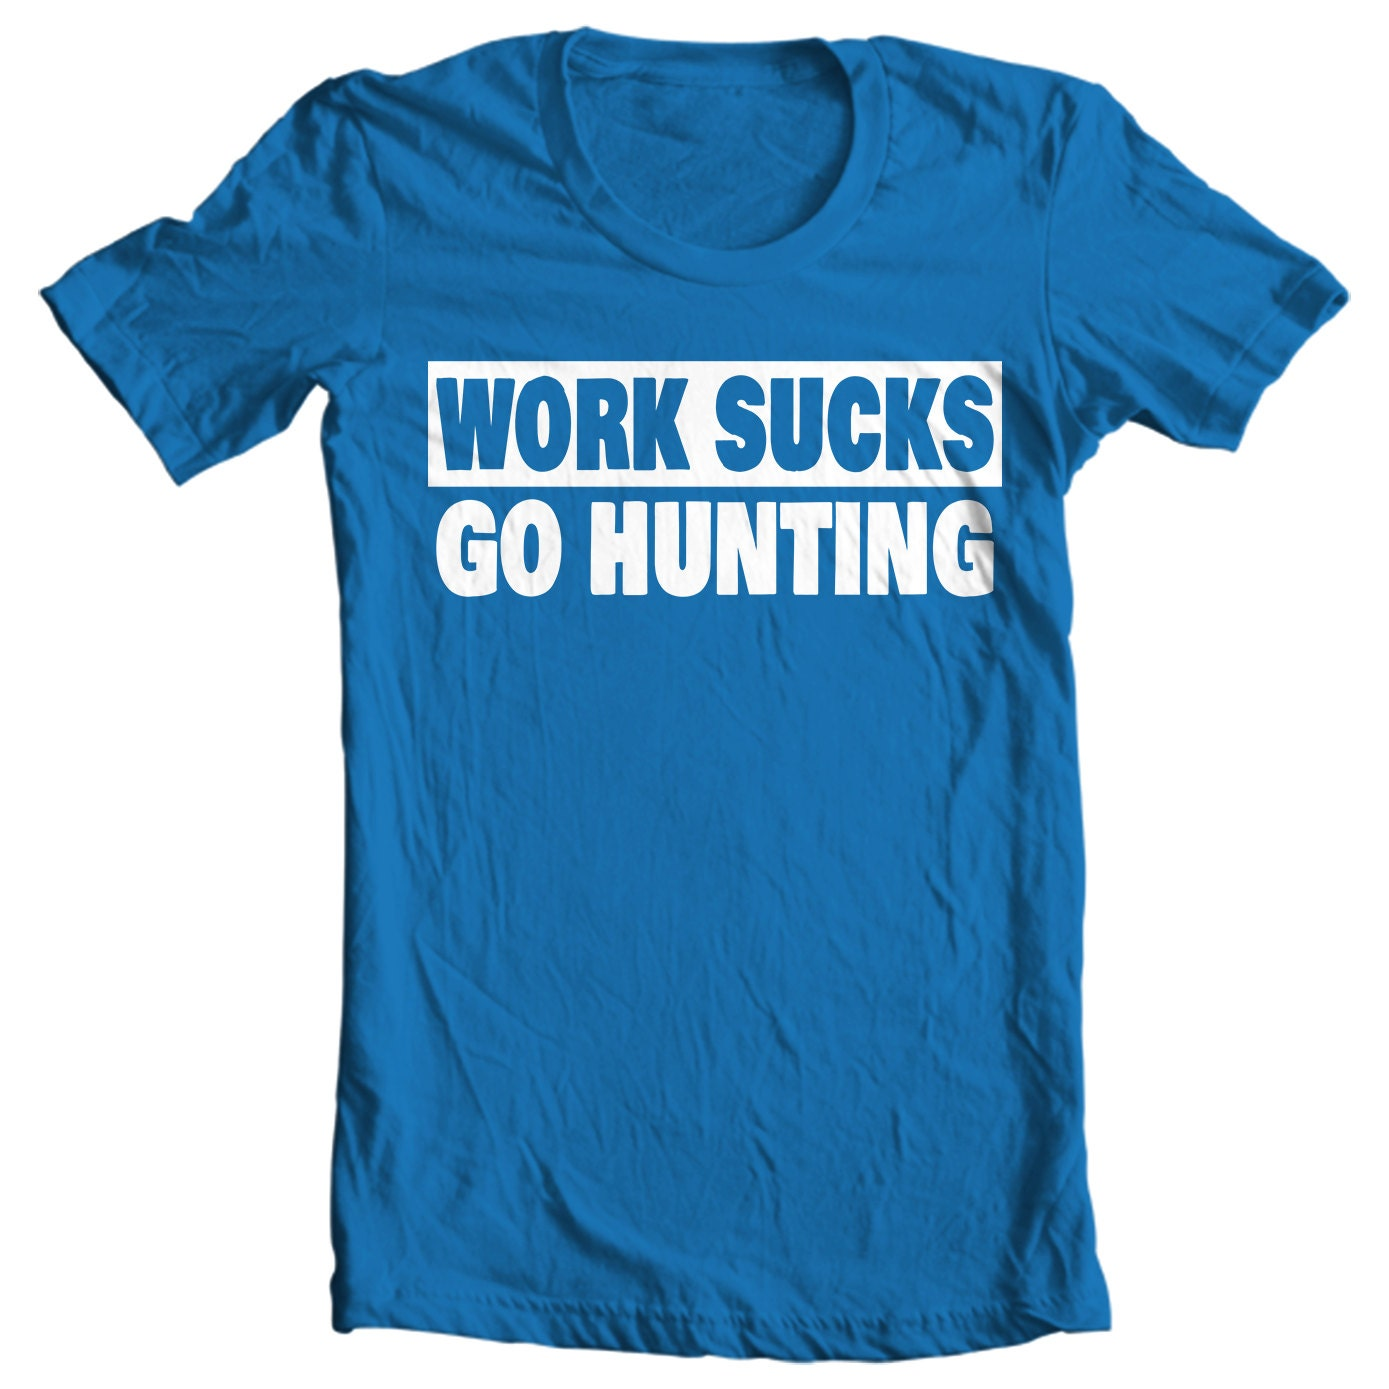 Work Sucks Go Hunting - Hunting T-shirt